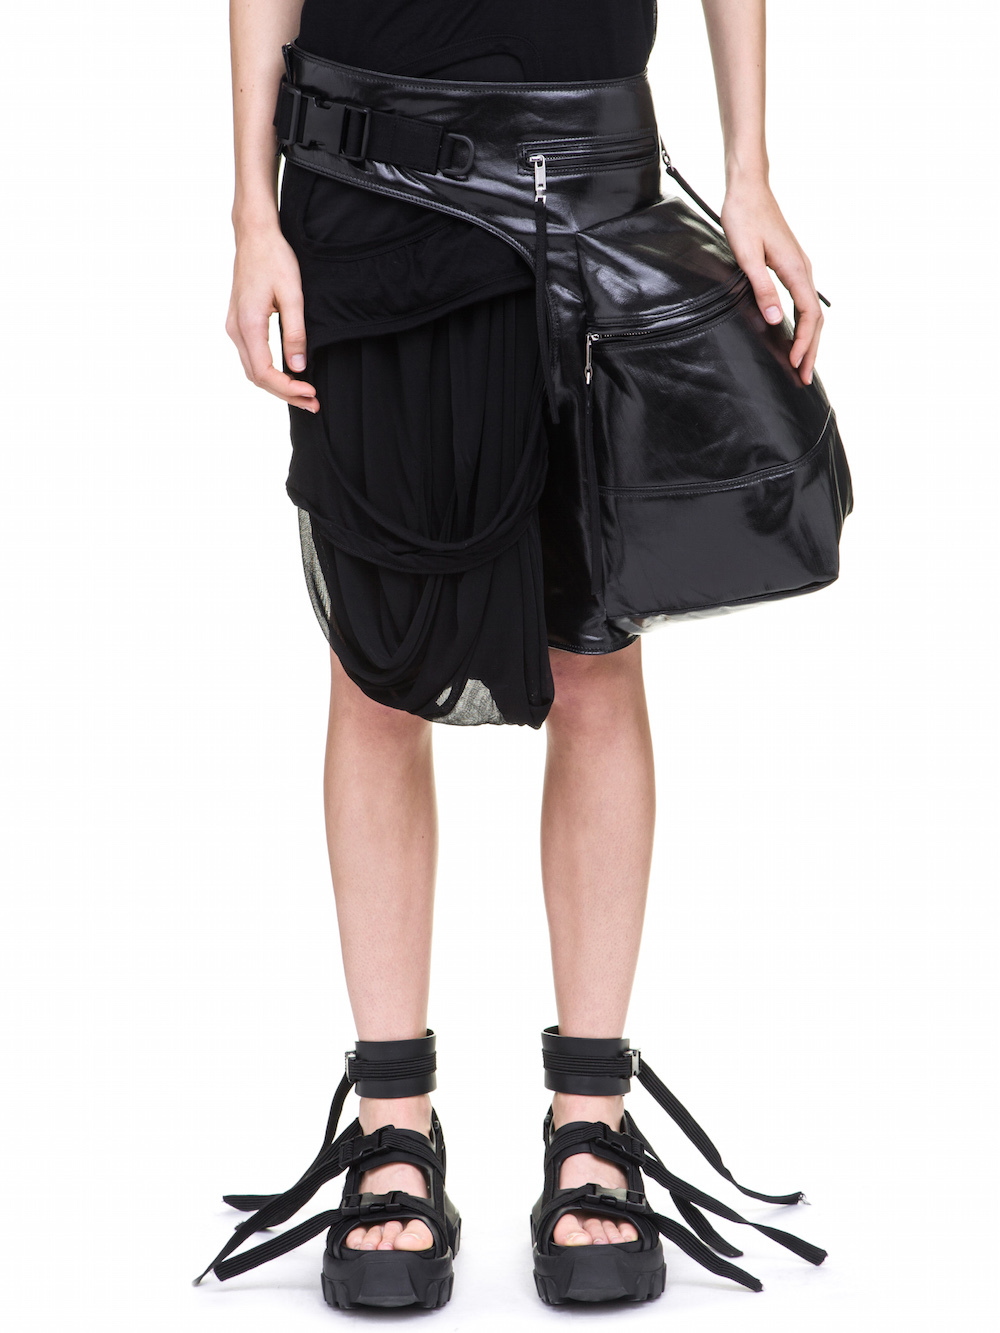 RICK OWENS CARGO CHAP IN BLACK IS A MEDIUM SIZE WAIST POUCH